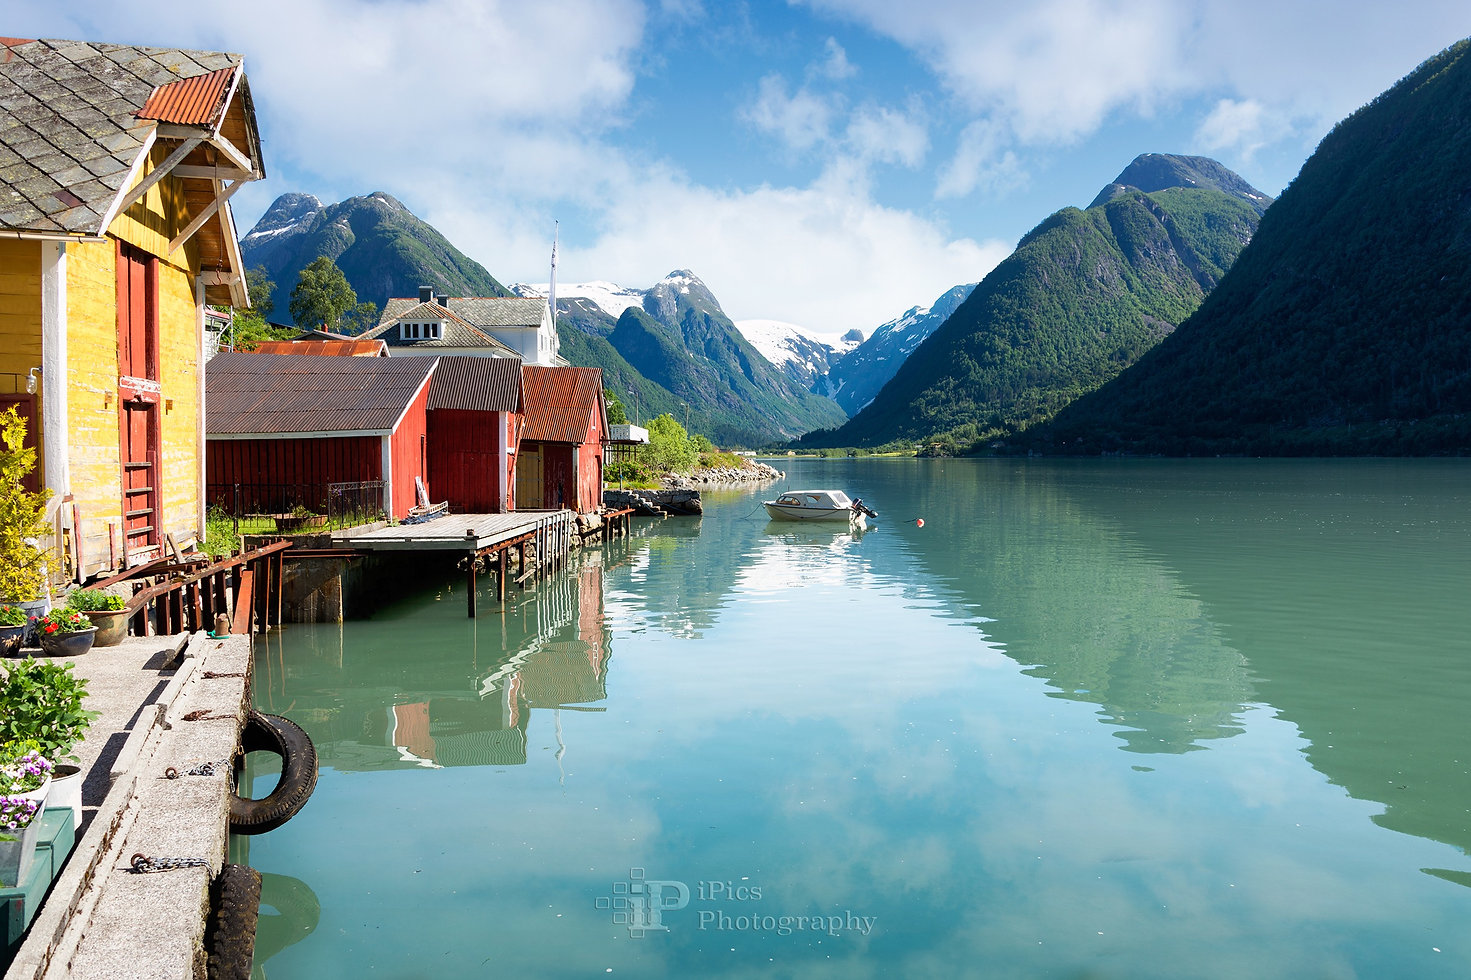 Landscape photograph of the fjord Fjaerlandsfjord and the village of Fjaerland (Mundal) with colorful houses, snow-capped mountains, a boat and clouds in the sky in a landscape in Sogn og Fjordane, Norway.